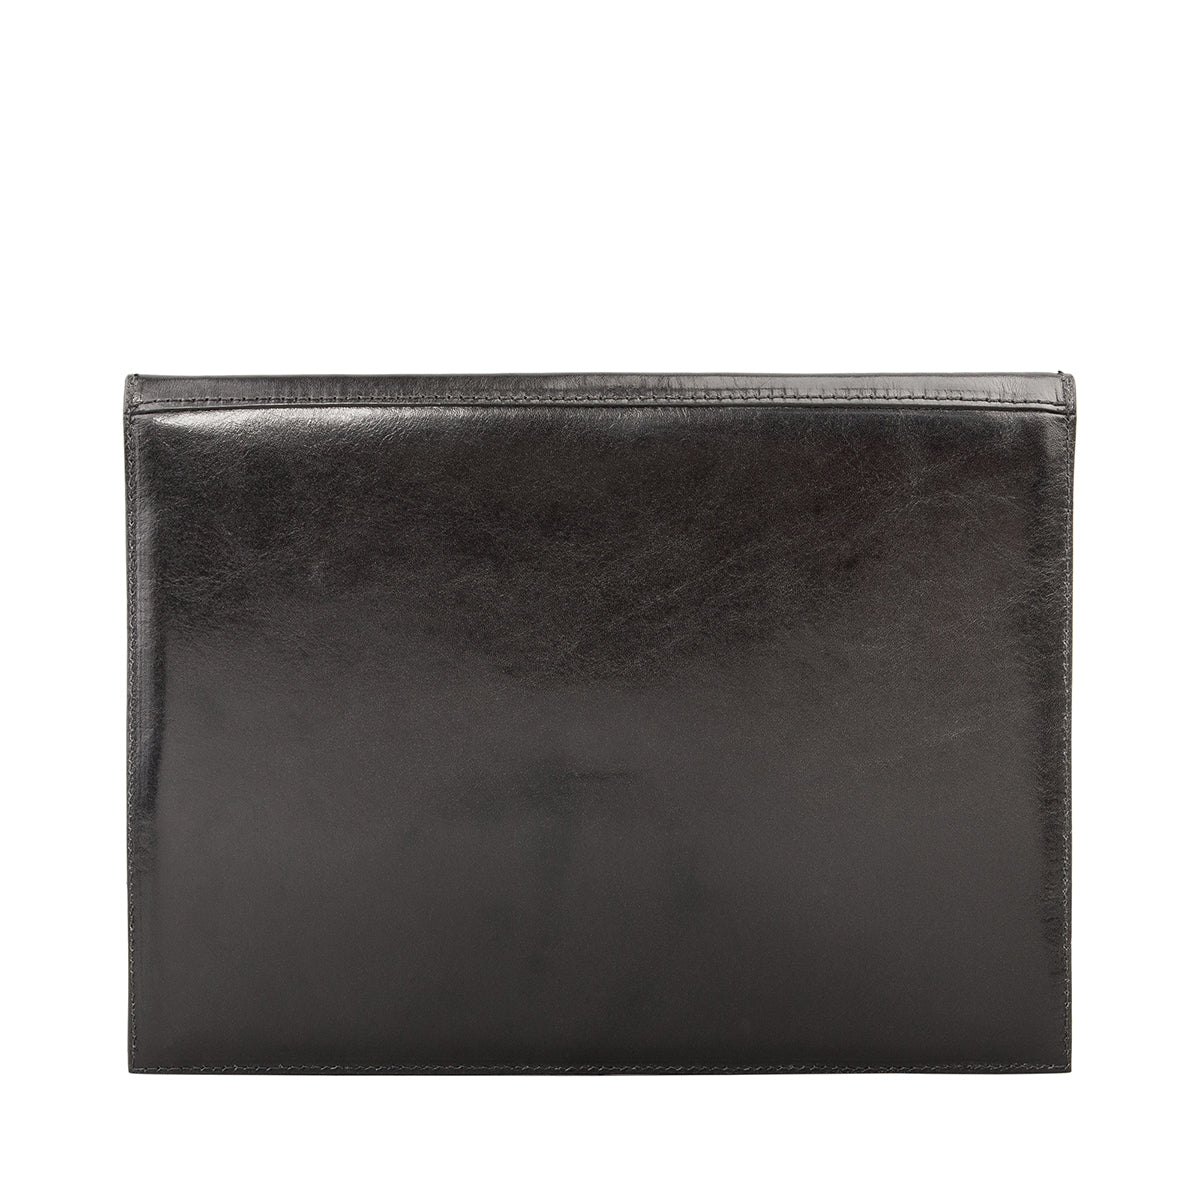 Image 3 of the 'Ettore' Black Veg-Tanned Leather Tablet Case